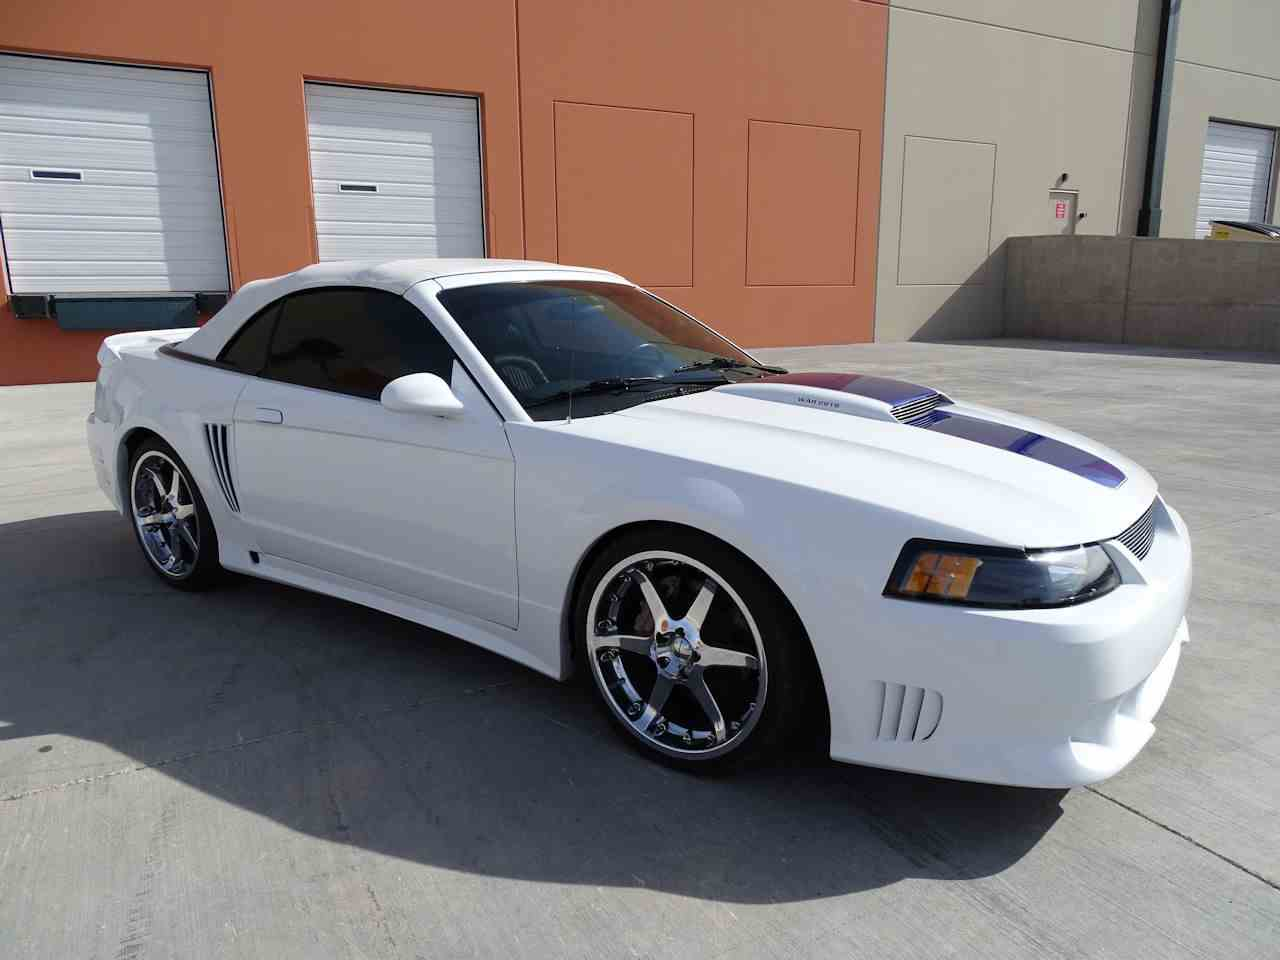 Large Picture of 2002 Ford Mustang - $34,995.00 Offered by Gateway Classic Cars - Scottsdale - MZG0